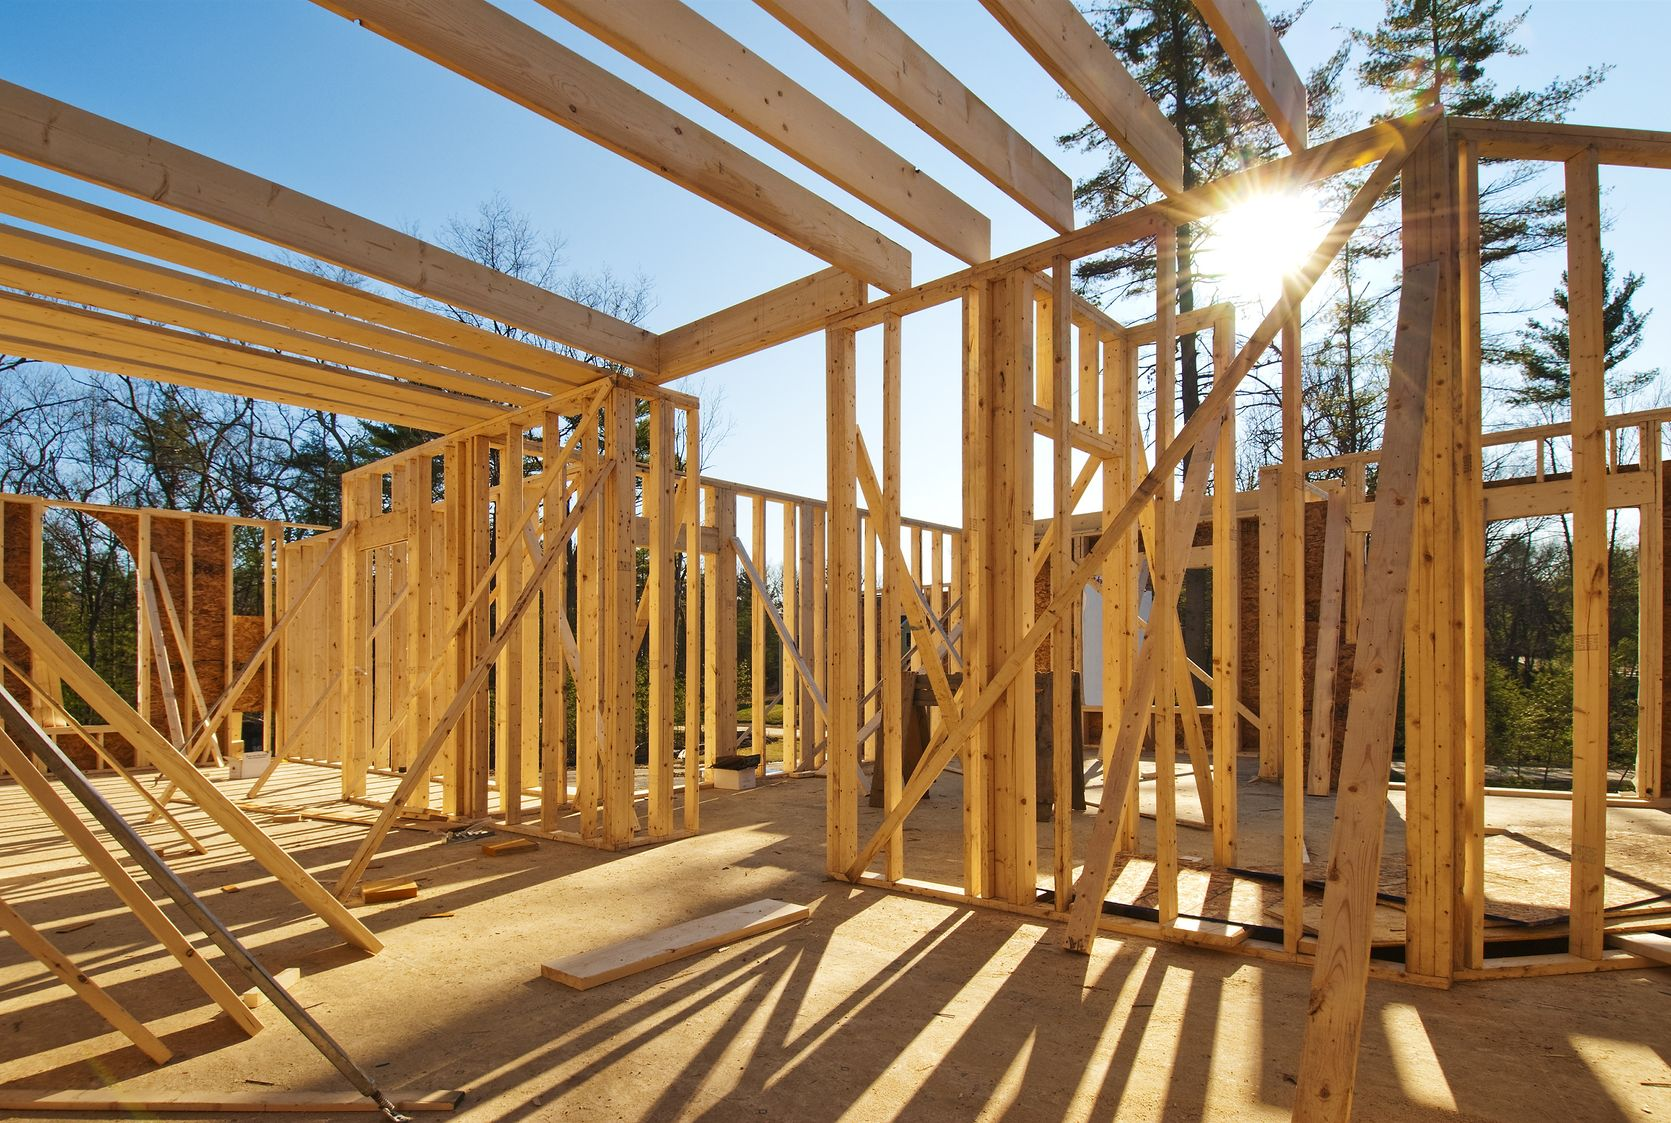 Flagstaff, AZ. Course of Construction Insurance